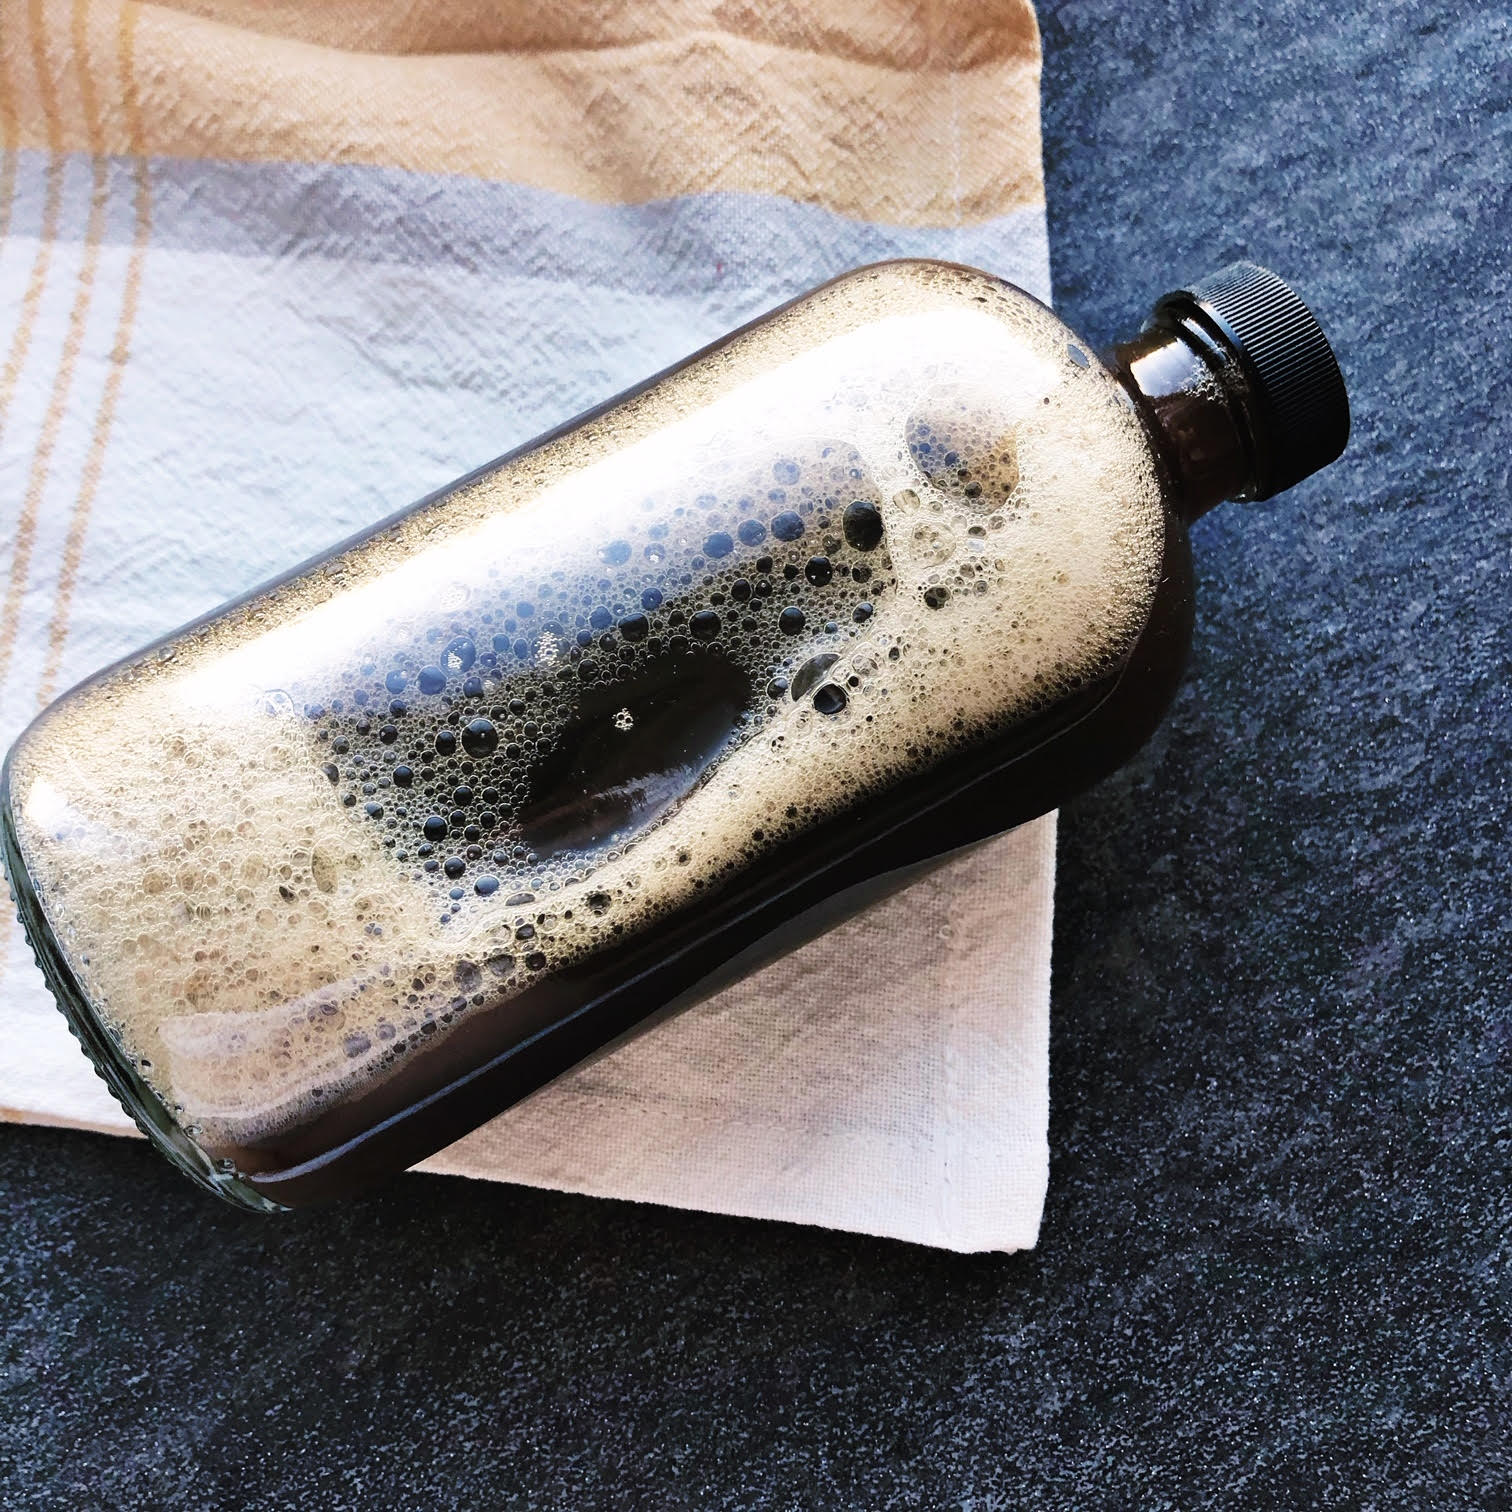 Cold brewed coffee in our Seek North Bottle